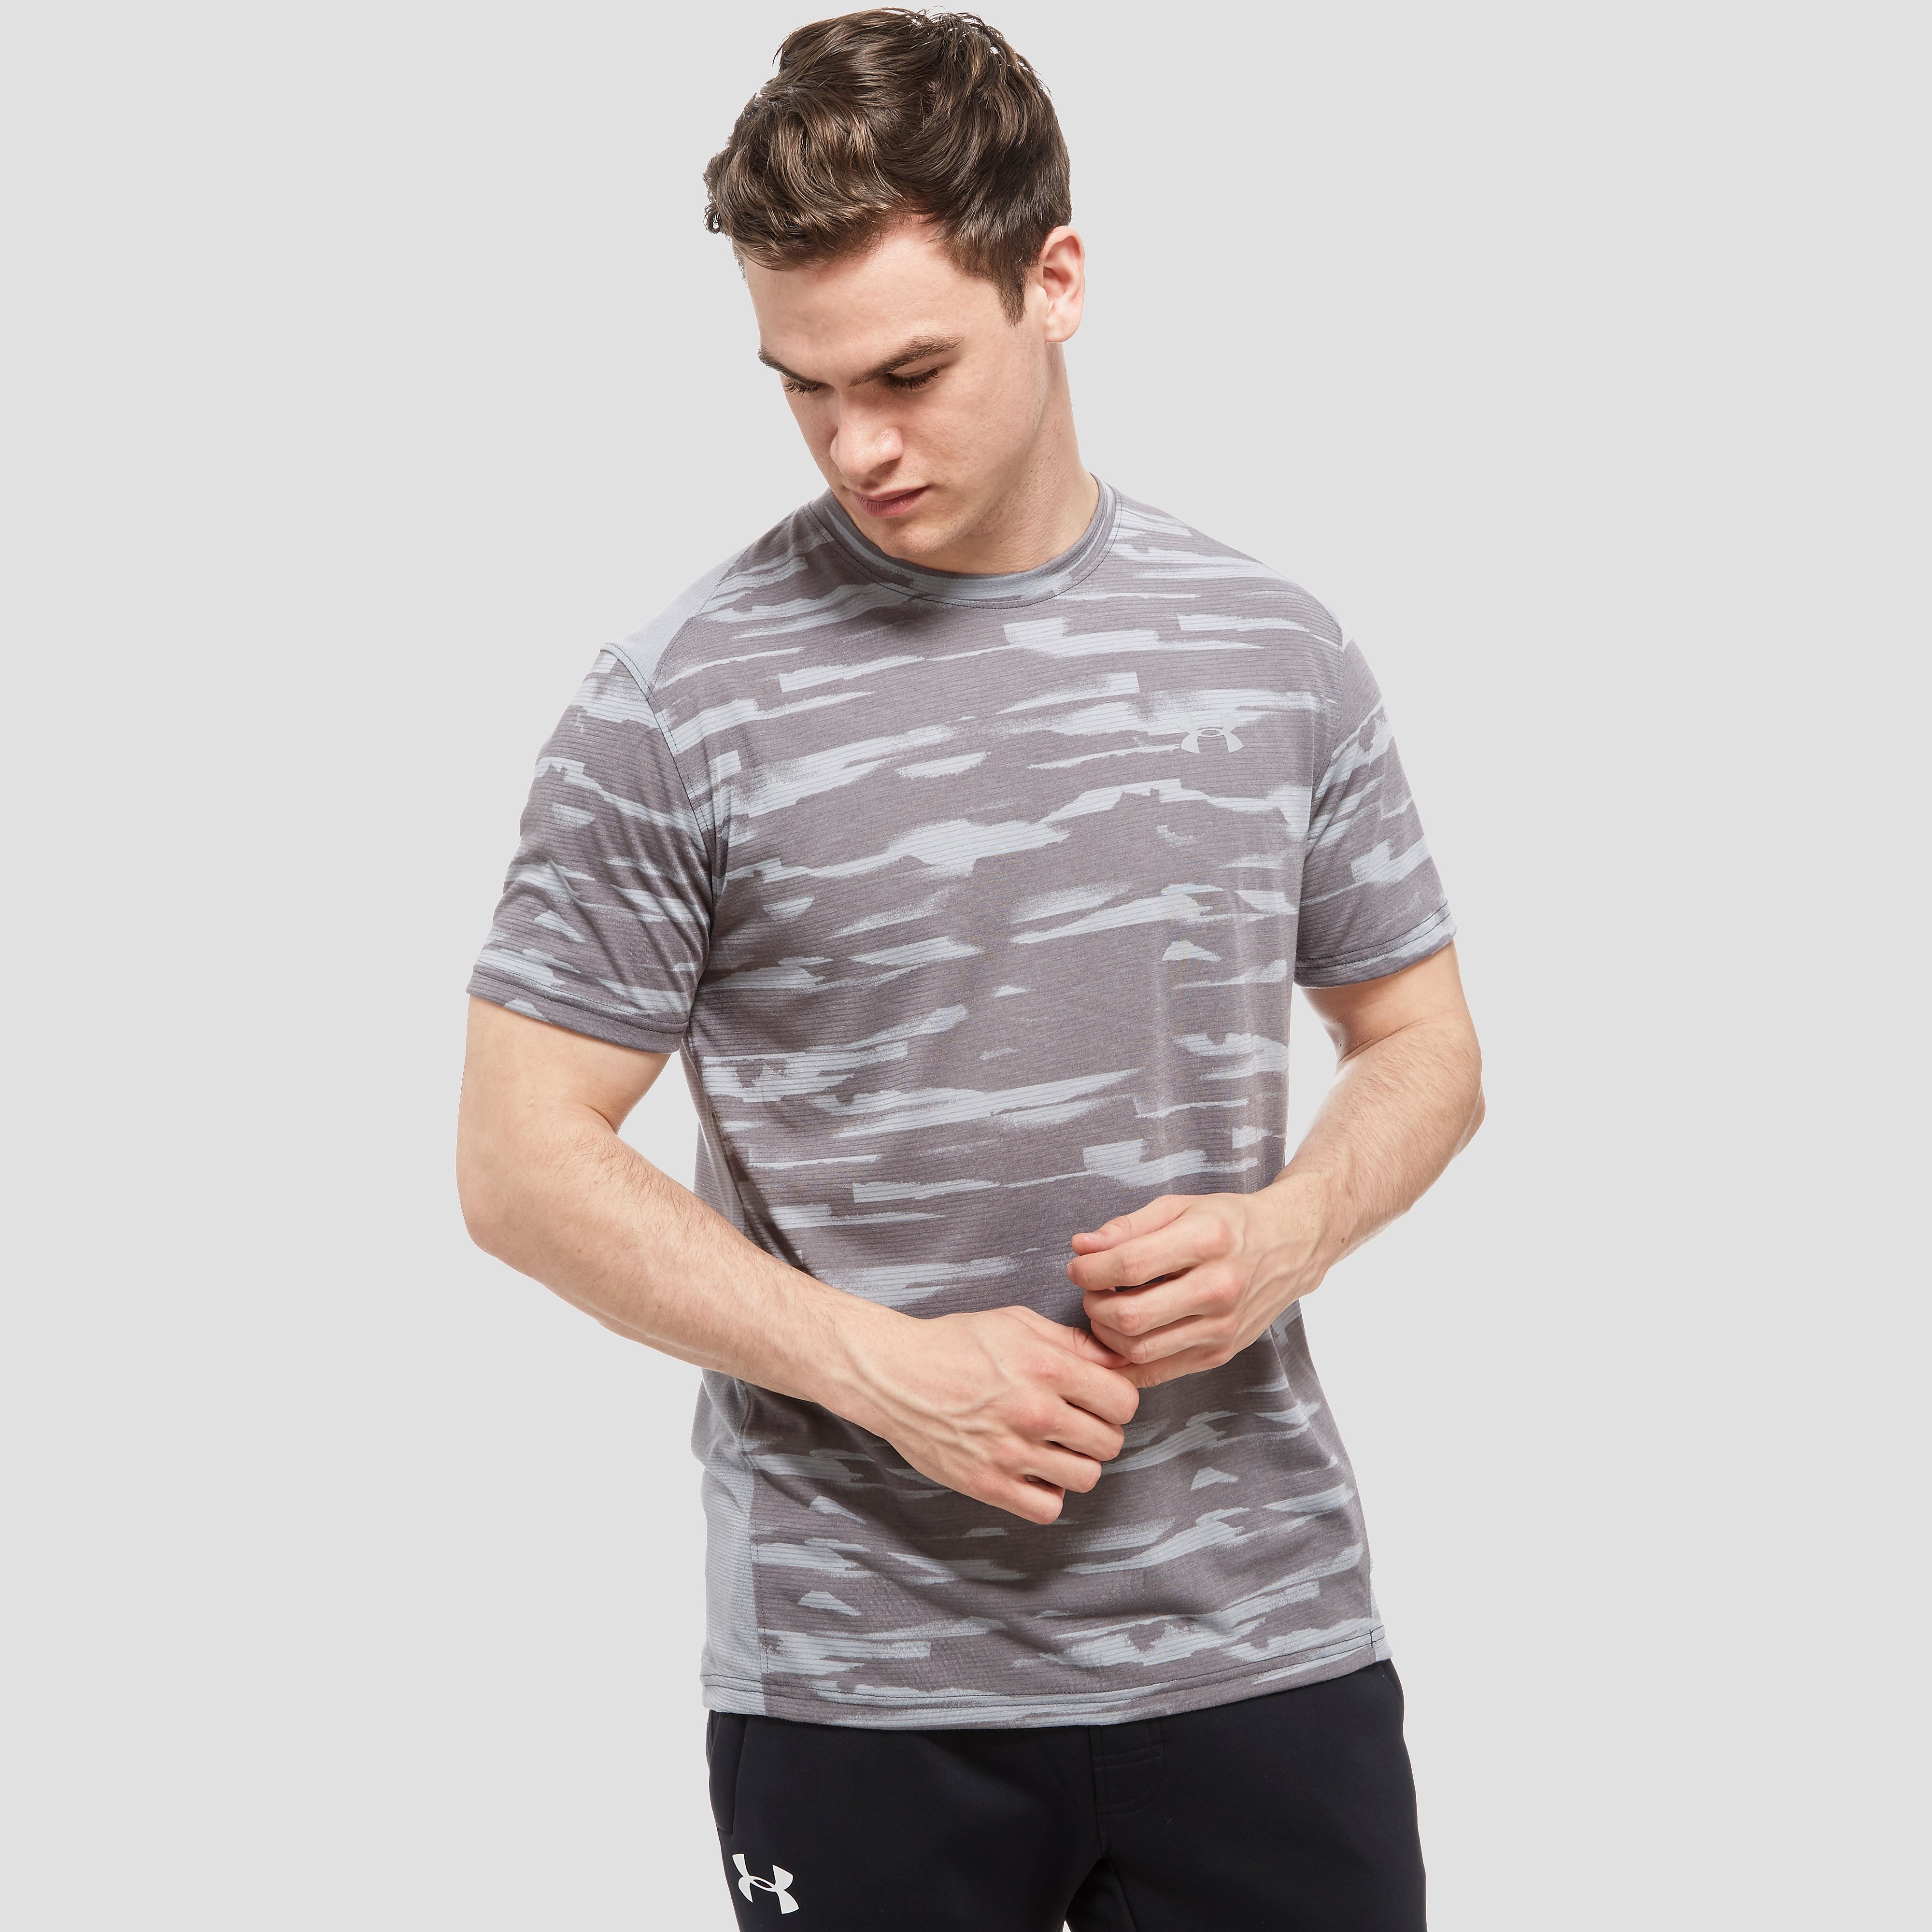 Under Armour TB Run Mesh Men's T-Shirt